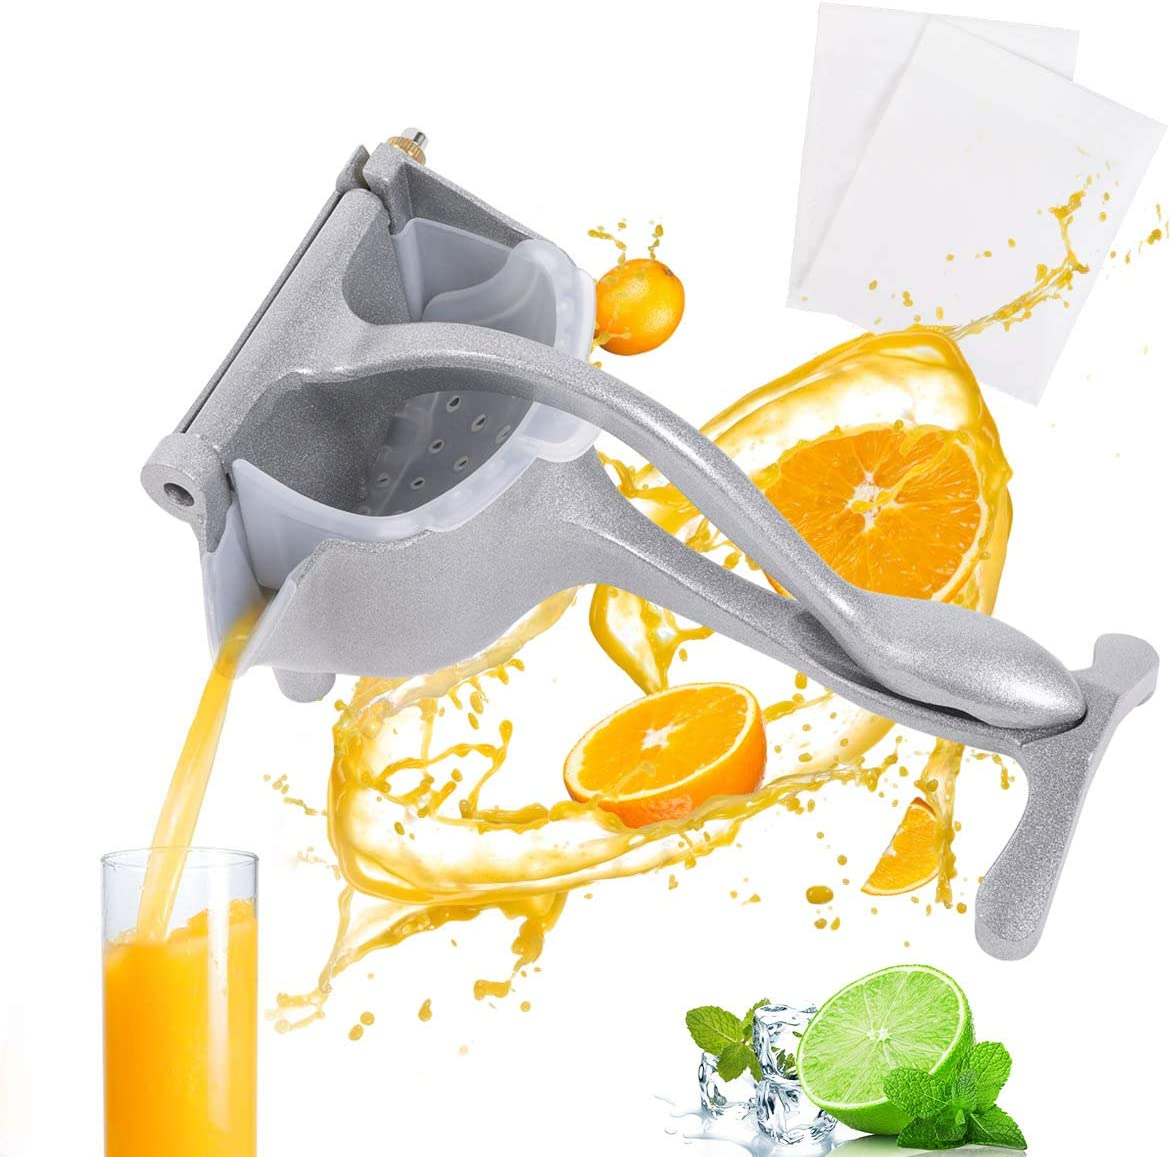 YBINYNA Manual Juicers,Stainless Steel Manual Fruit Juicer Portable Fruit Press Lemon Orange Squeezer Fruit Hand Squeezer Fruit Juicer Citrus Extractor Tool